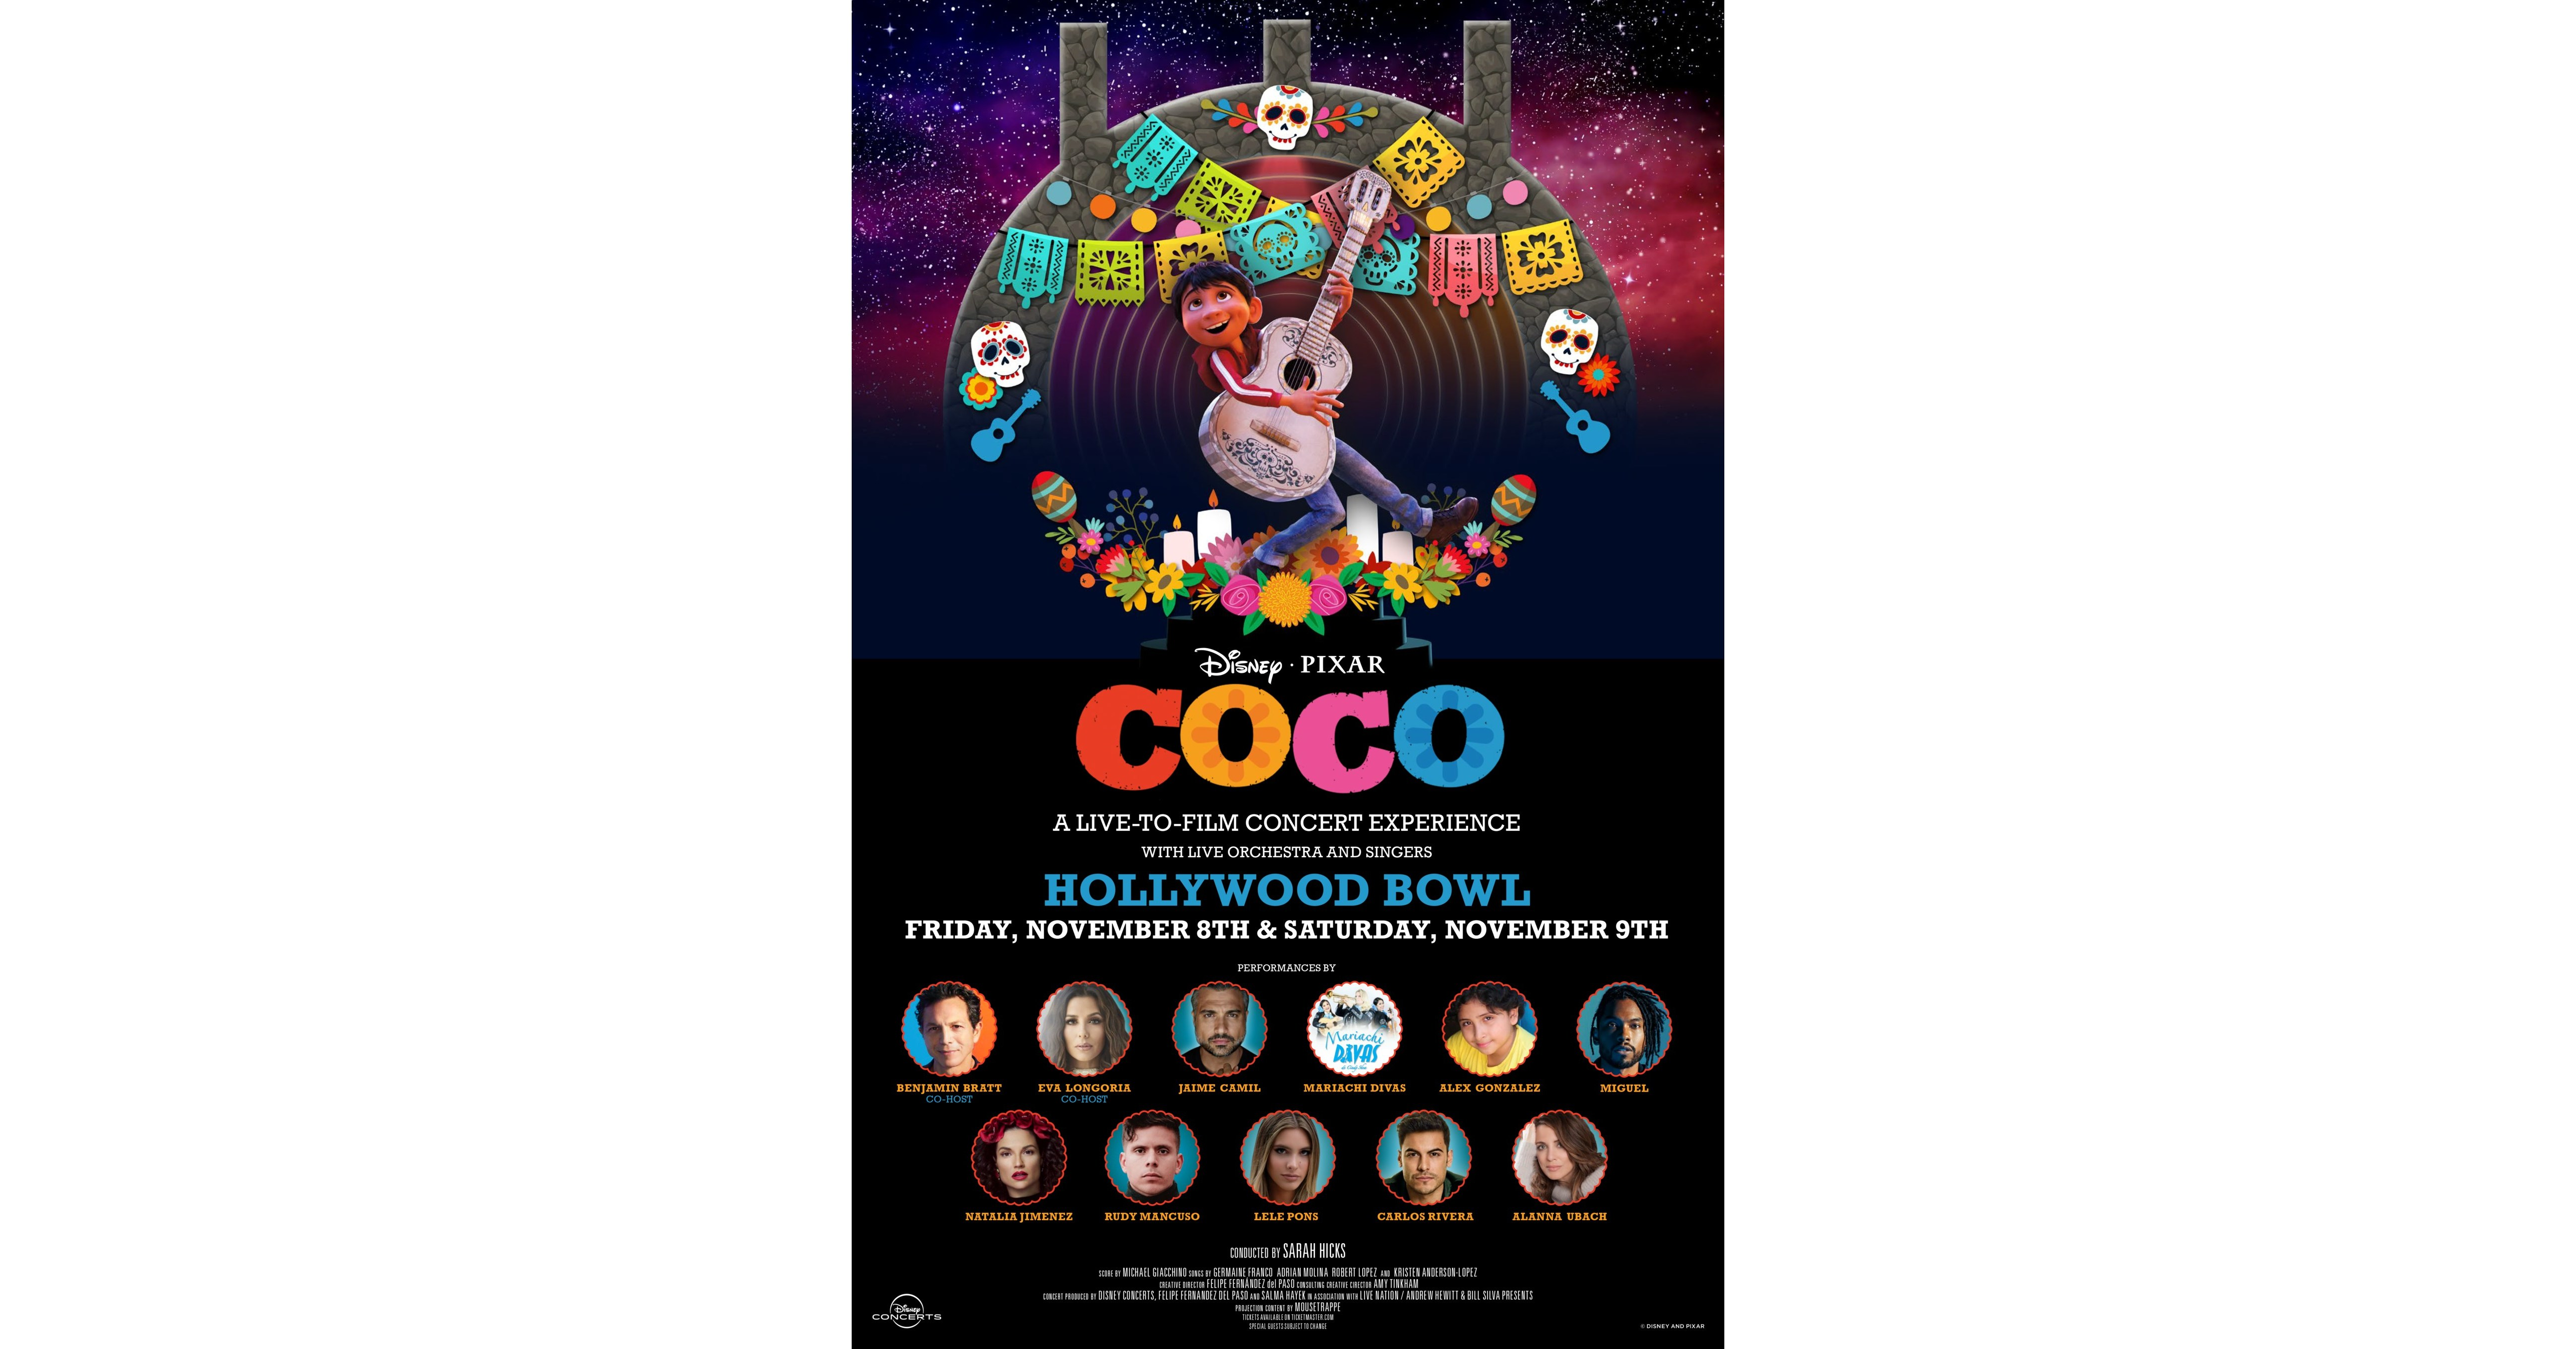 Disney And Pixar's 'Coco' Comes To The Hollywood Bowl For